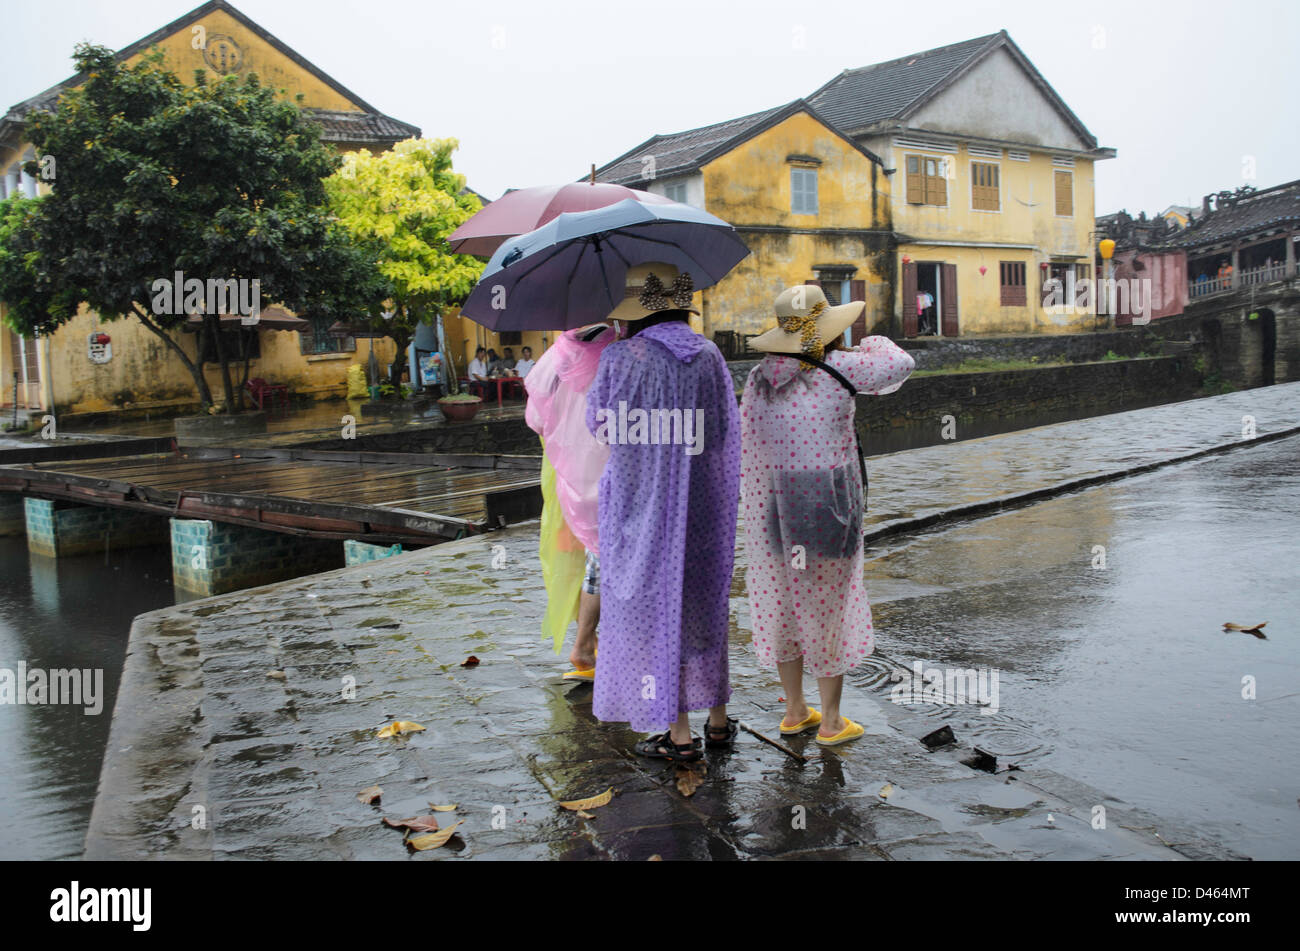 Tourists in rain gear on a rainy day in Hoi An Vietnam Stock Photo